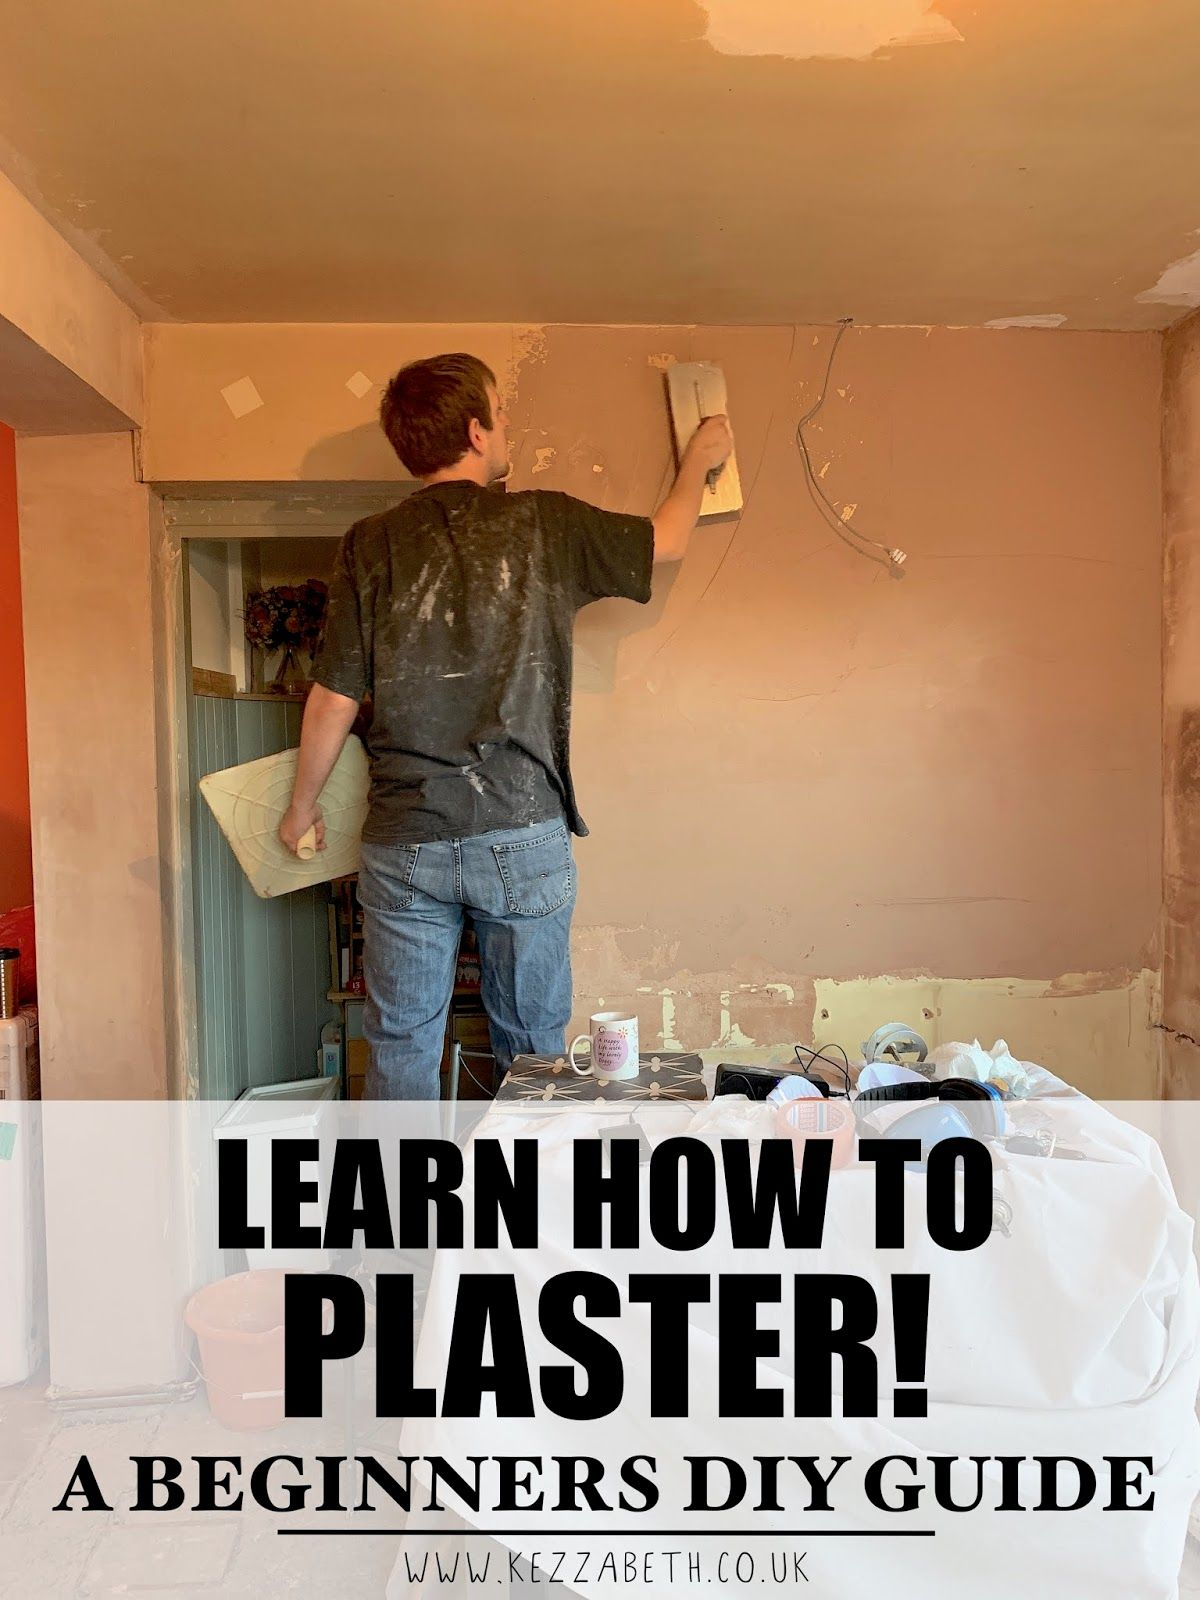 Ever wondered if you could do your own plastering to save some cash? We're sharing everything we know, so you can learn how! | www.kezzabeth.co.uk | #diy #diyplastering #plastering #homerenovation #homeimprovement #renovation #renovationblog